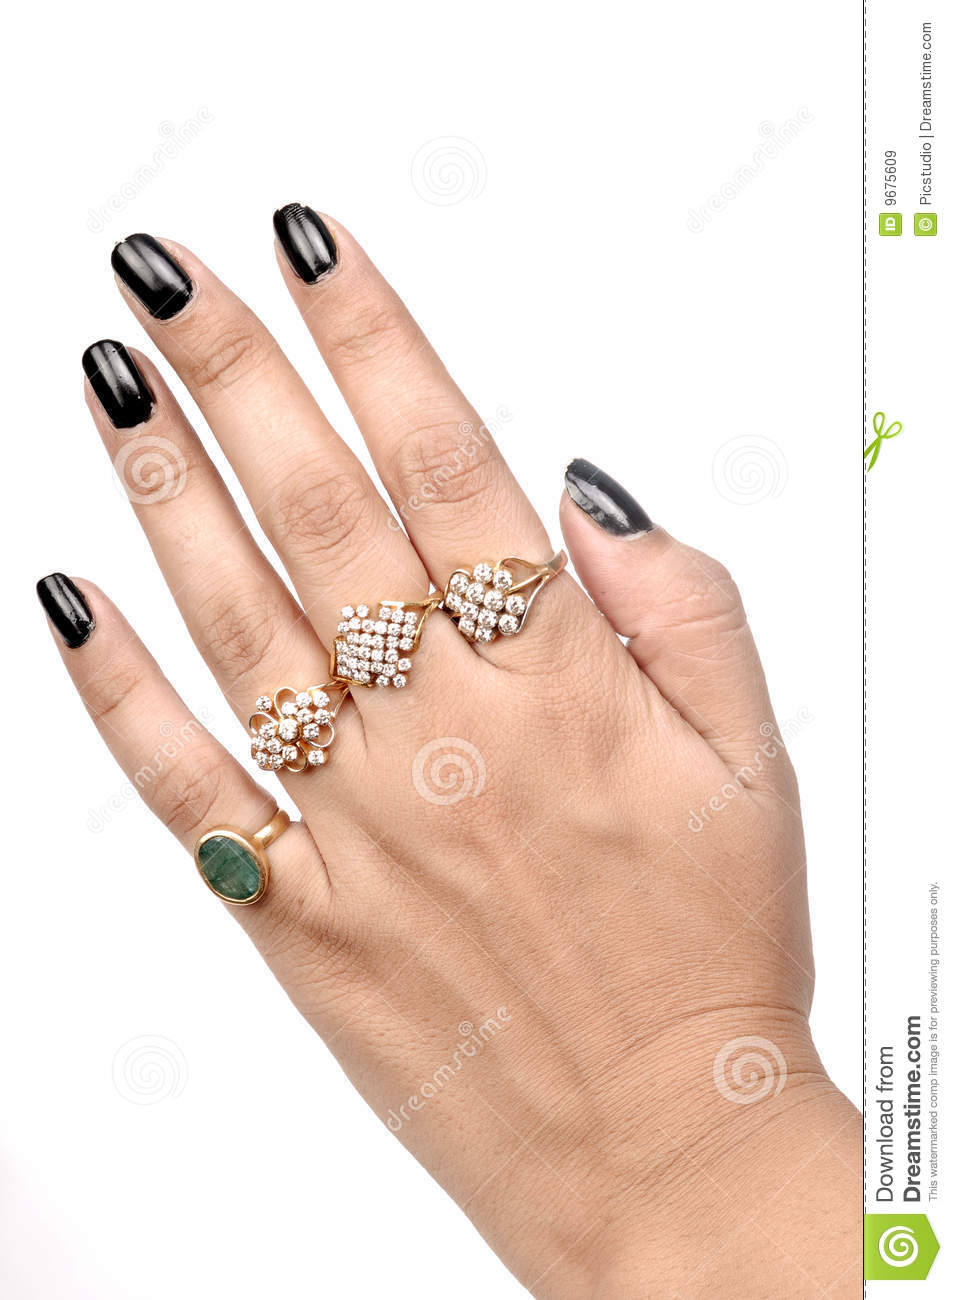 Diamond Rings In Hand Royalty Free Stock Images - Image: 9675609